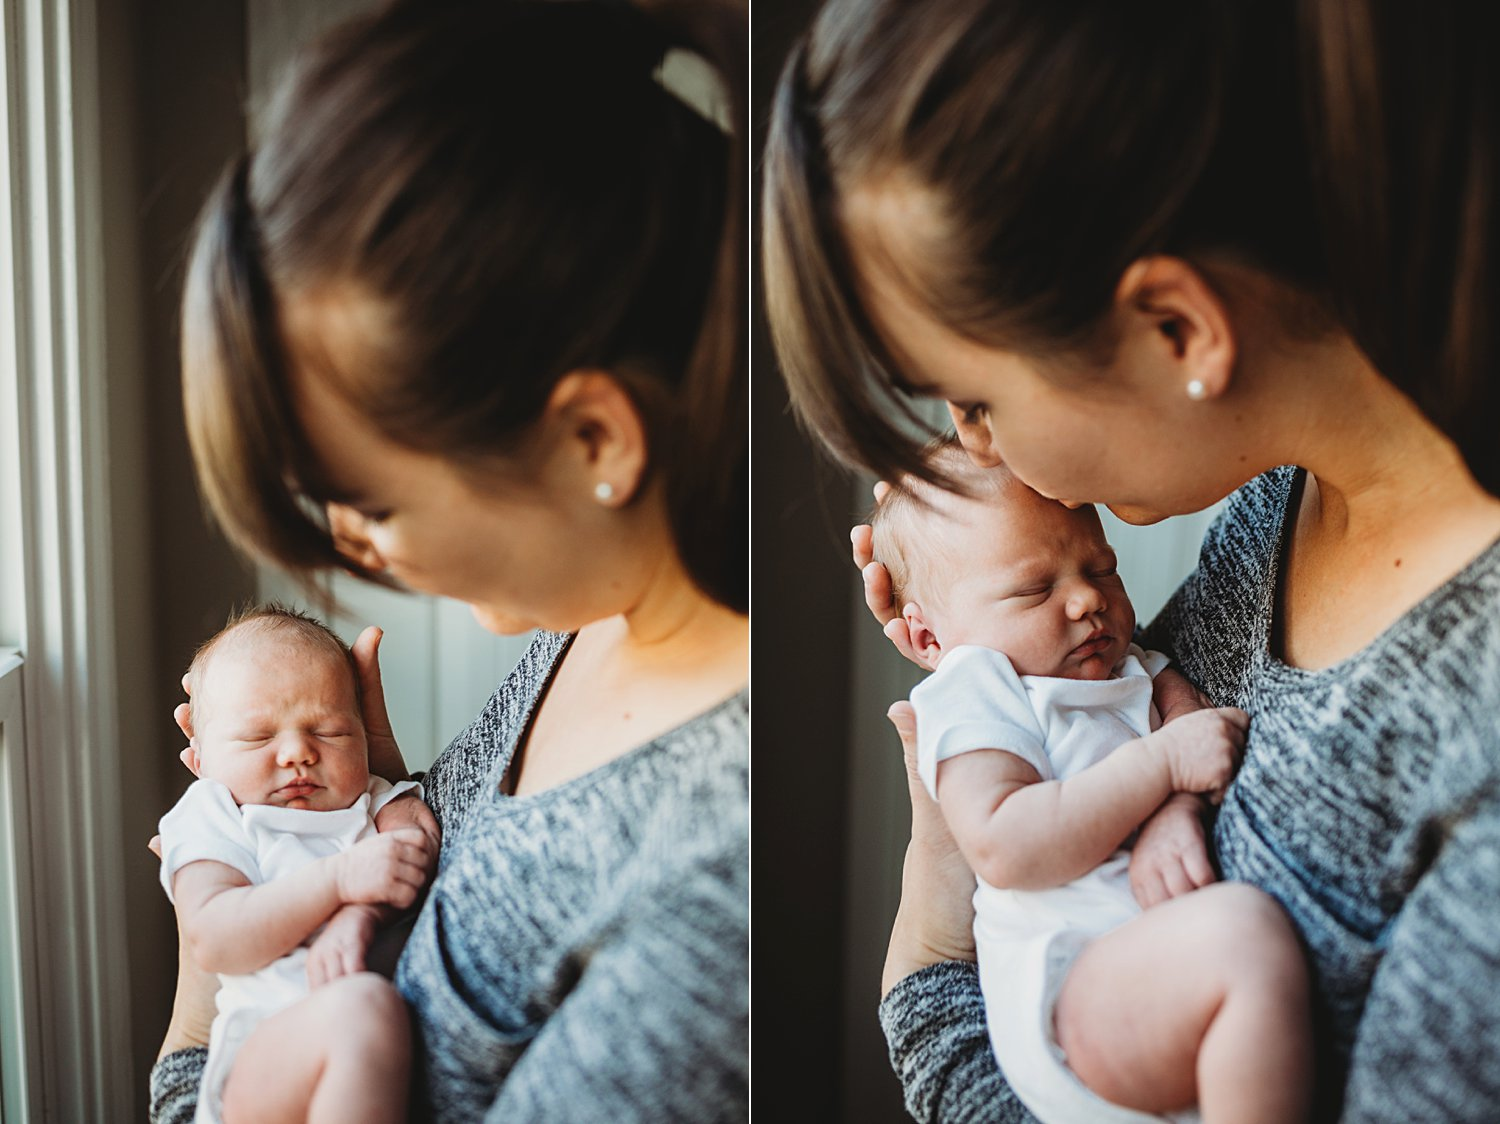 Photo of Mom holding newborn baby and kissing her head